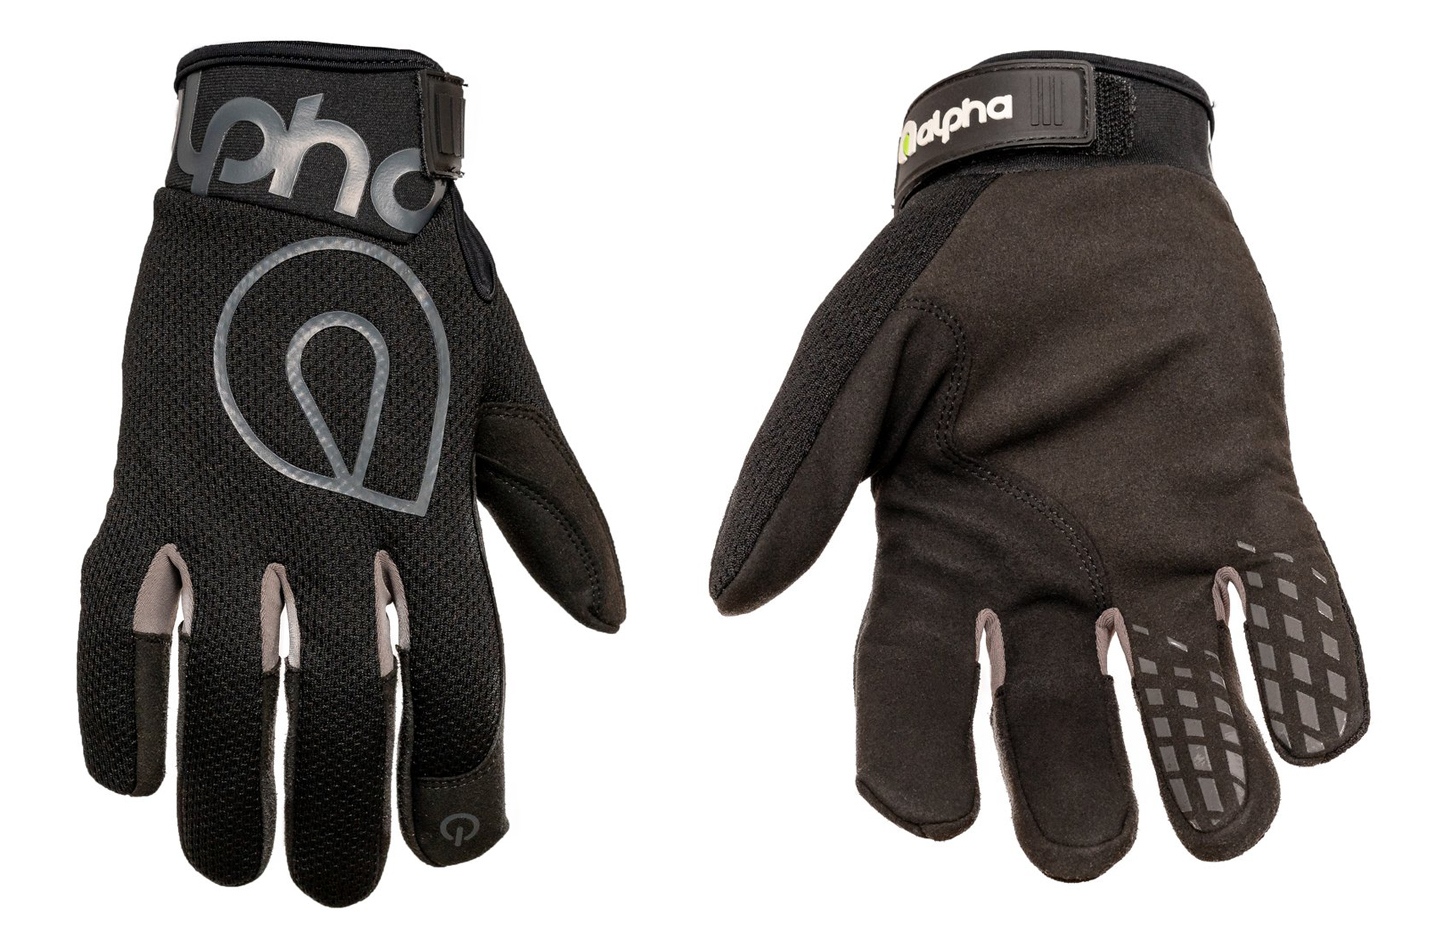 Alpha Gloves AG02-01-XXL Gloves, Shop, The Standard, Hook and Loop Closure, Neoprene Cuff, Mesh Top, Touch Screen Capable, Synthetic Leather Palm, Black, 2X-Large, Pair